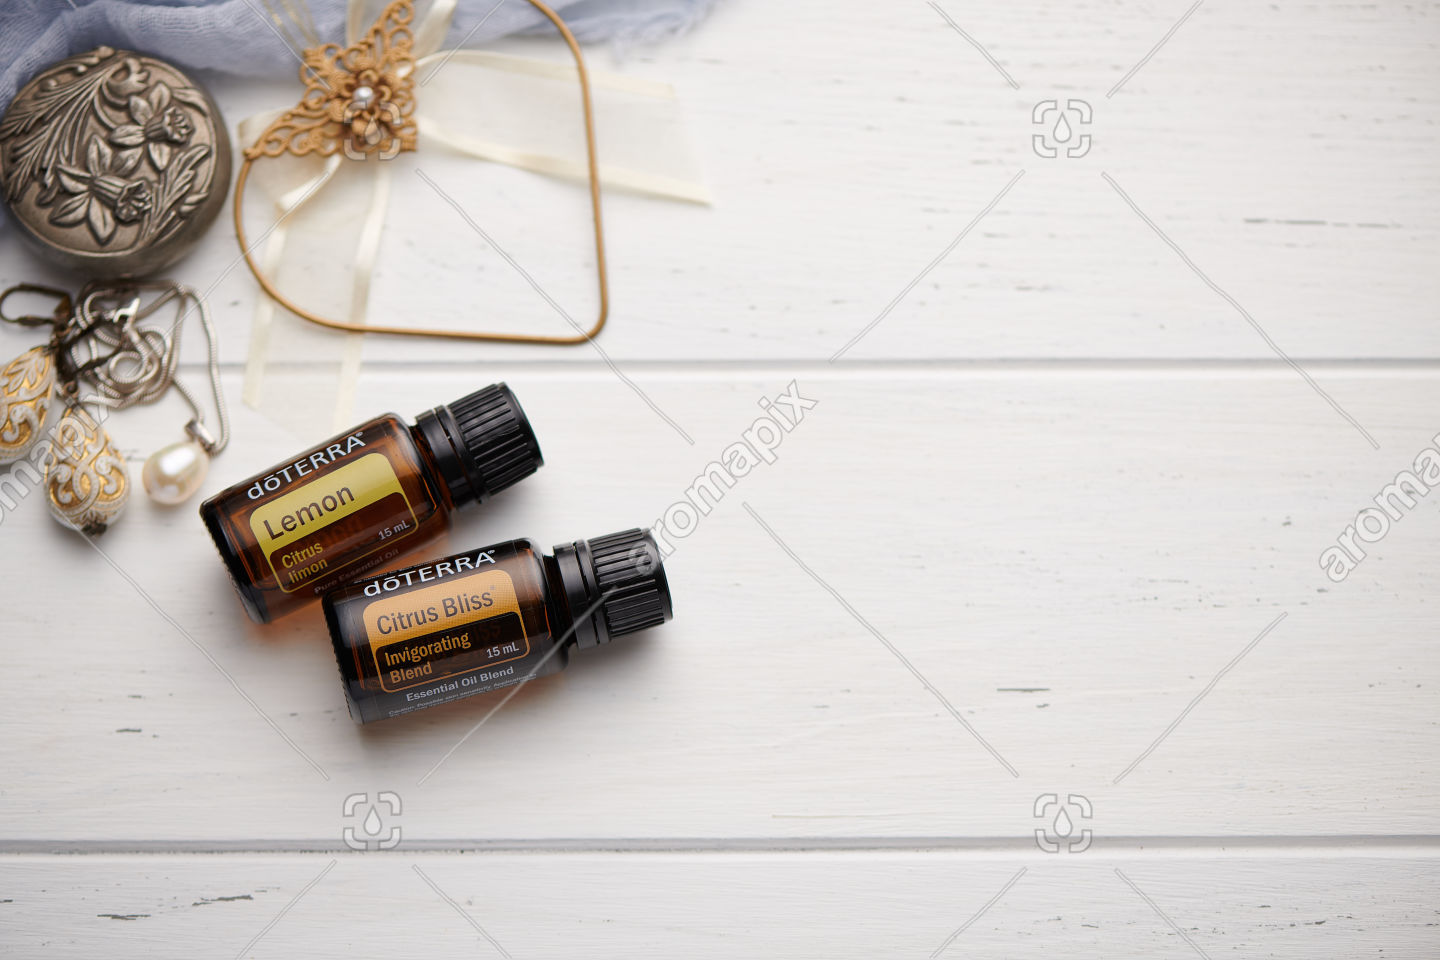 doTERRA Lemon and Citrus Bliss on white vintage wooden background